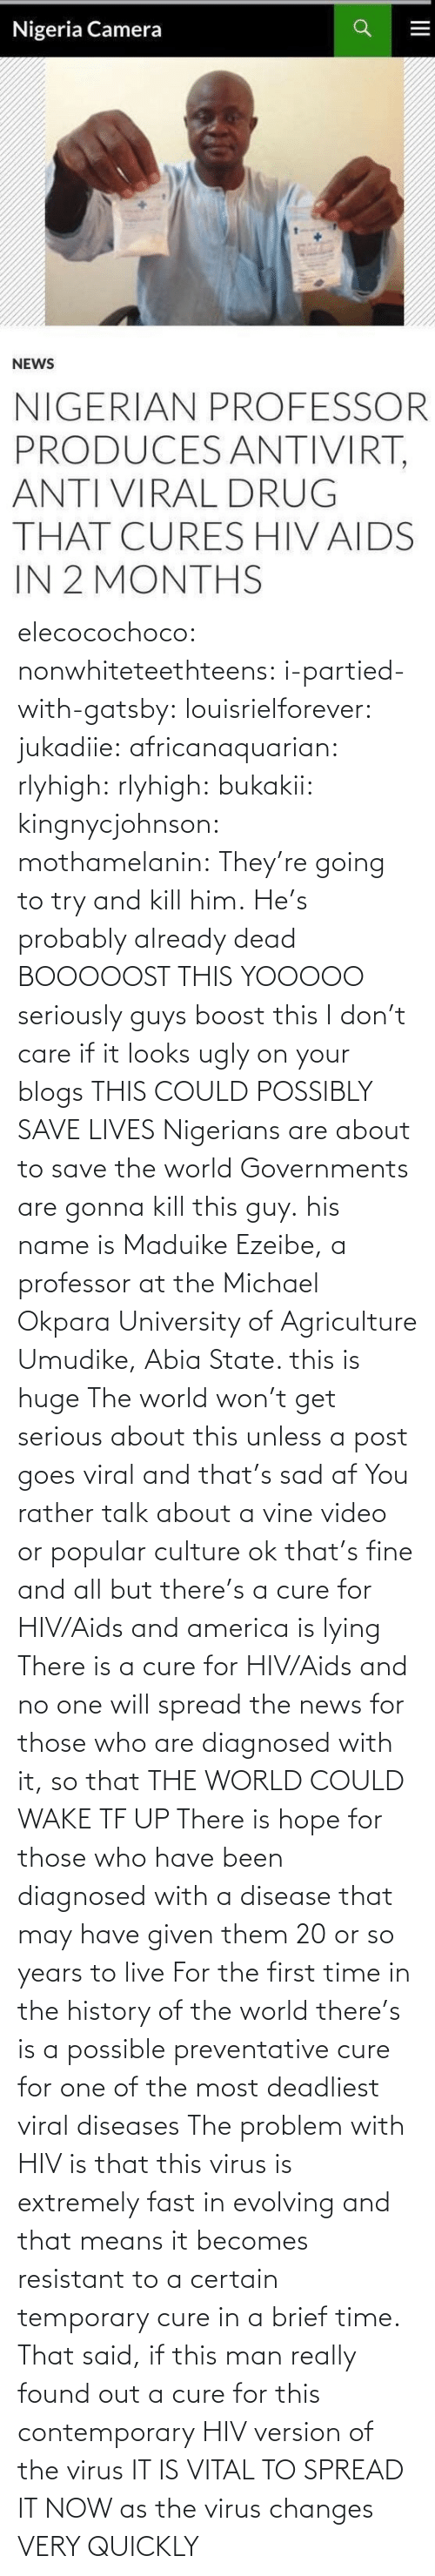 Seriously Guys: Nigeria Camera  NEWS  NIGERIAN PROFESSOR  PRODUCES ANTIVIRT,  ANTI VIRAL DRUG  THAT CURES HIV AIDS  IN 2 MONTHS elecocochoco:  nonwhiteteethteens:  i-partied-with-gatsby:  louisrielforever:  jukadiie:  africanaquarian:  rlyhigh:  rlyhigh:  bukakii:  kingnycjohnson:  mothamelanin:  They're going to try and kill him.  He's probably already dead   BOOOOOST THIS  YOOOOO  seriously guys boost this I don't care if it looks ugly on your blogs THIS COULD POSSIBLY SAVE LIVES  Nigerians are about to save the world    Governments are gonna kill this guy.  his name is Maduike Ezeibe, a professor at the Michael Okpara University of Agriculture Umudike, Abia State. this is huge  The world won't get serious about this unless a post goes viral and that's sad af You rather talk about a vine video or popular culture ok that's fine and all but there's a cure for HIV/Aids and america is lying There is a cure for HIV/Aids and no one will spread the news for those who are diagnosed with it, so that THE WORLD COULD WAKE TF UP There is hope for those who have been diagnosed with a disease that may have given them 20 or so years to live For the first time in the history of the world there's is a possible preventative cure for one of the most deadliest viral diseases  The problem with HIV is that this virus is extremely fast in evolving and that means it becomes resistant to a certain temporary cure in a brief time. That said, if this man really found out a cure for this contemporary HIV version of the virus IT IS VITAL TO SPREAD IT NOW as the virus changes VERY QUICKLY